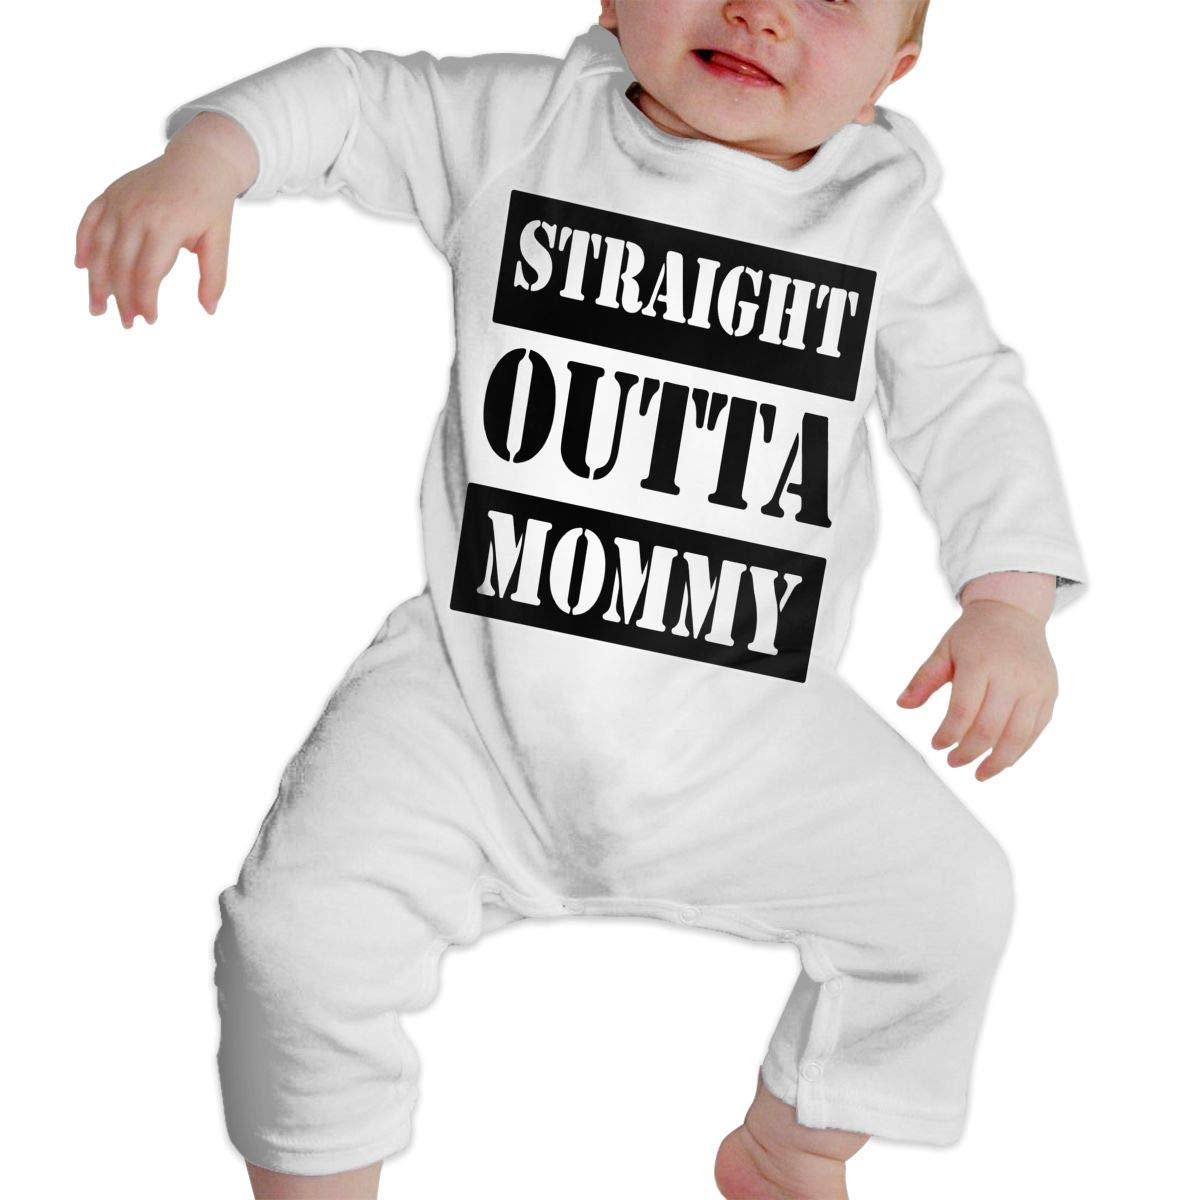 LBJQ8 Straight Outta Mommy Baby Infant Girls Essential Basic Romper Jumpsuit Outfits Clothes